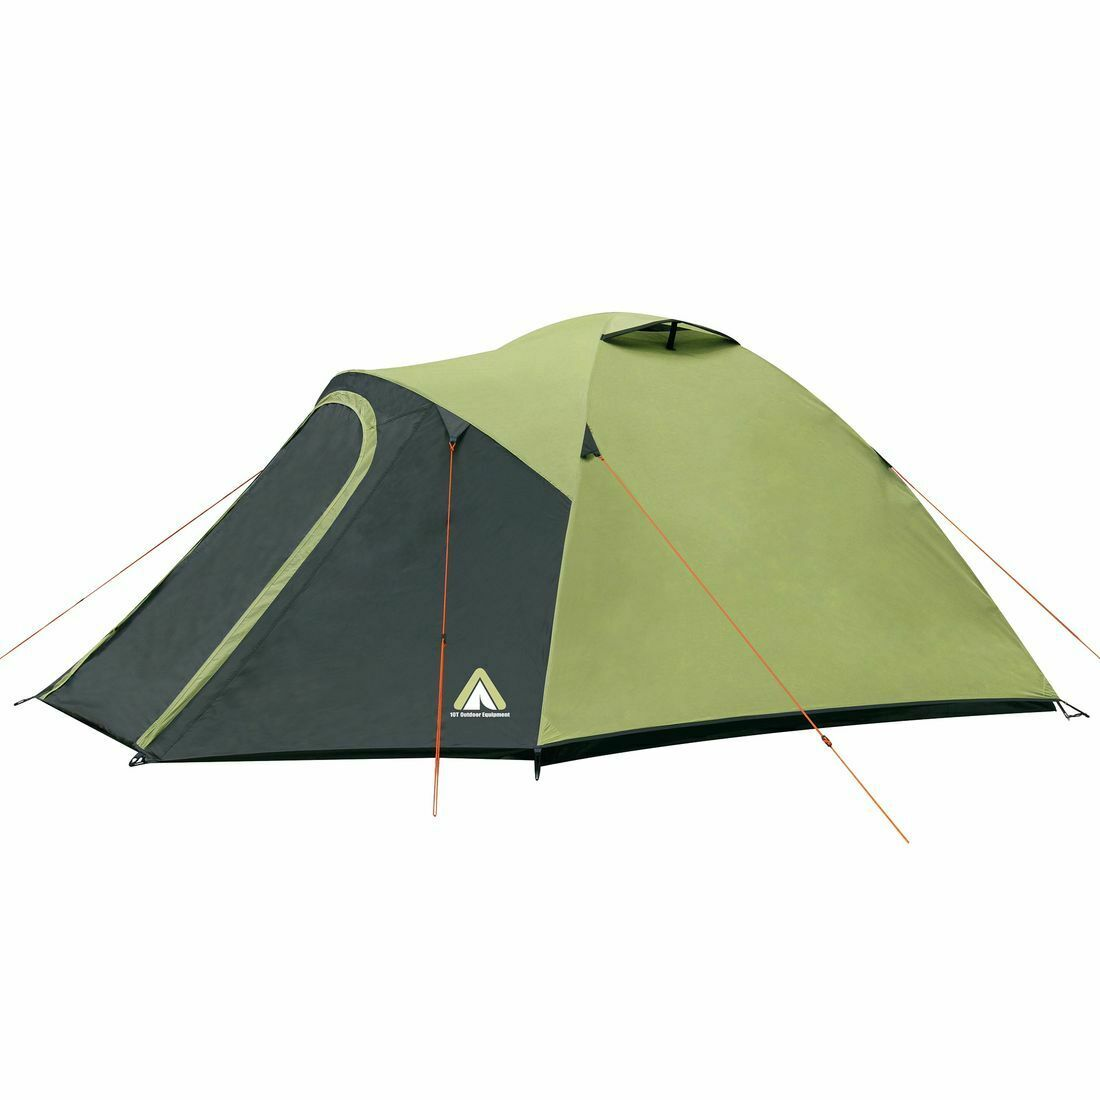 Tent Cardiff 5 man dome tent waterproof family tent 5000mm camping tent